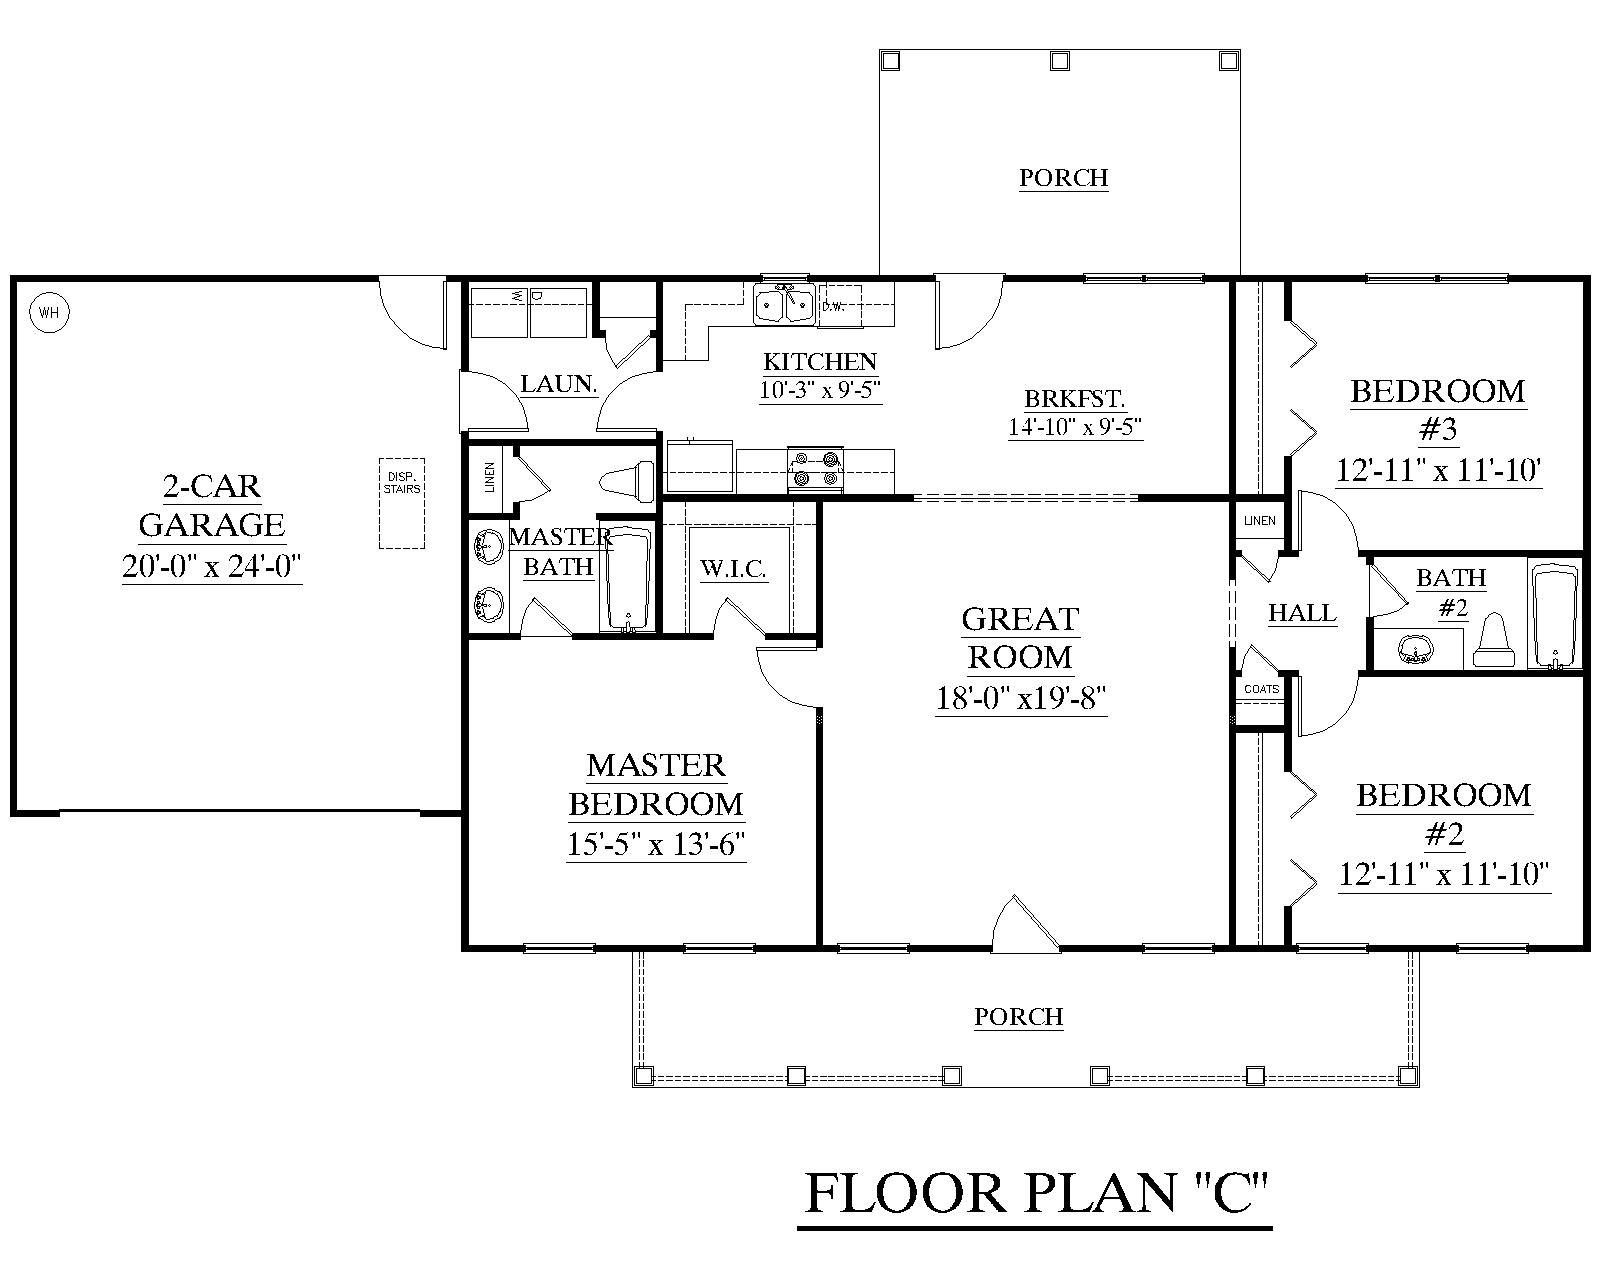 House plan 1500 c the james c attractive one story ranch for Split ranch house plans